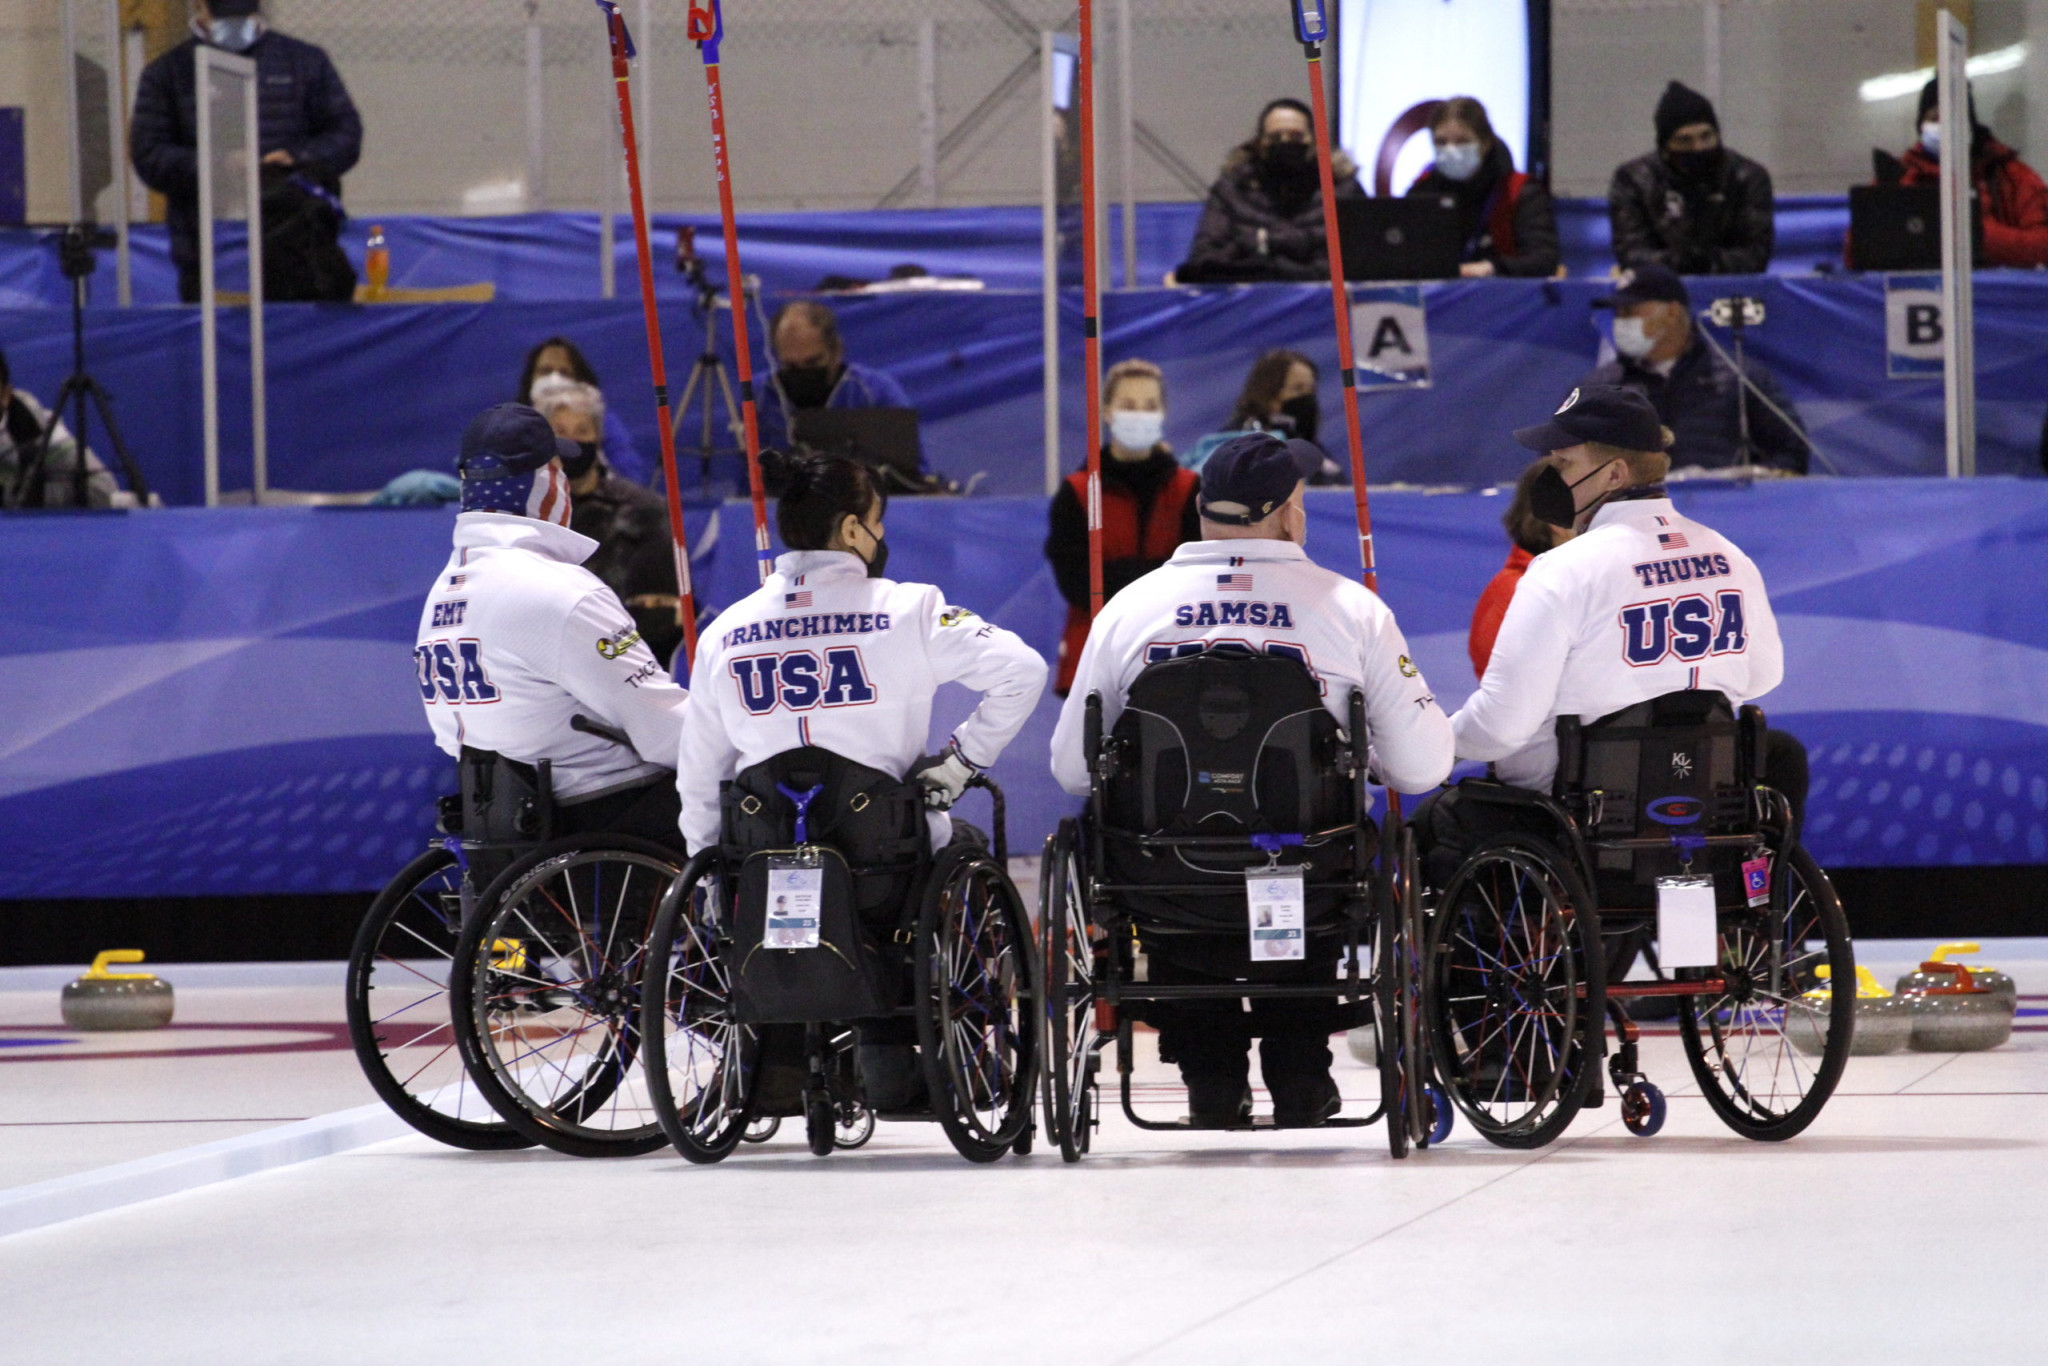 US beat Switzerland in World Wheelchair-B Curling Championship final